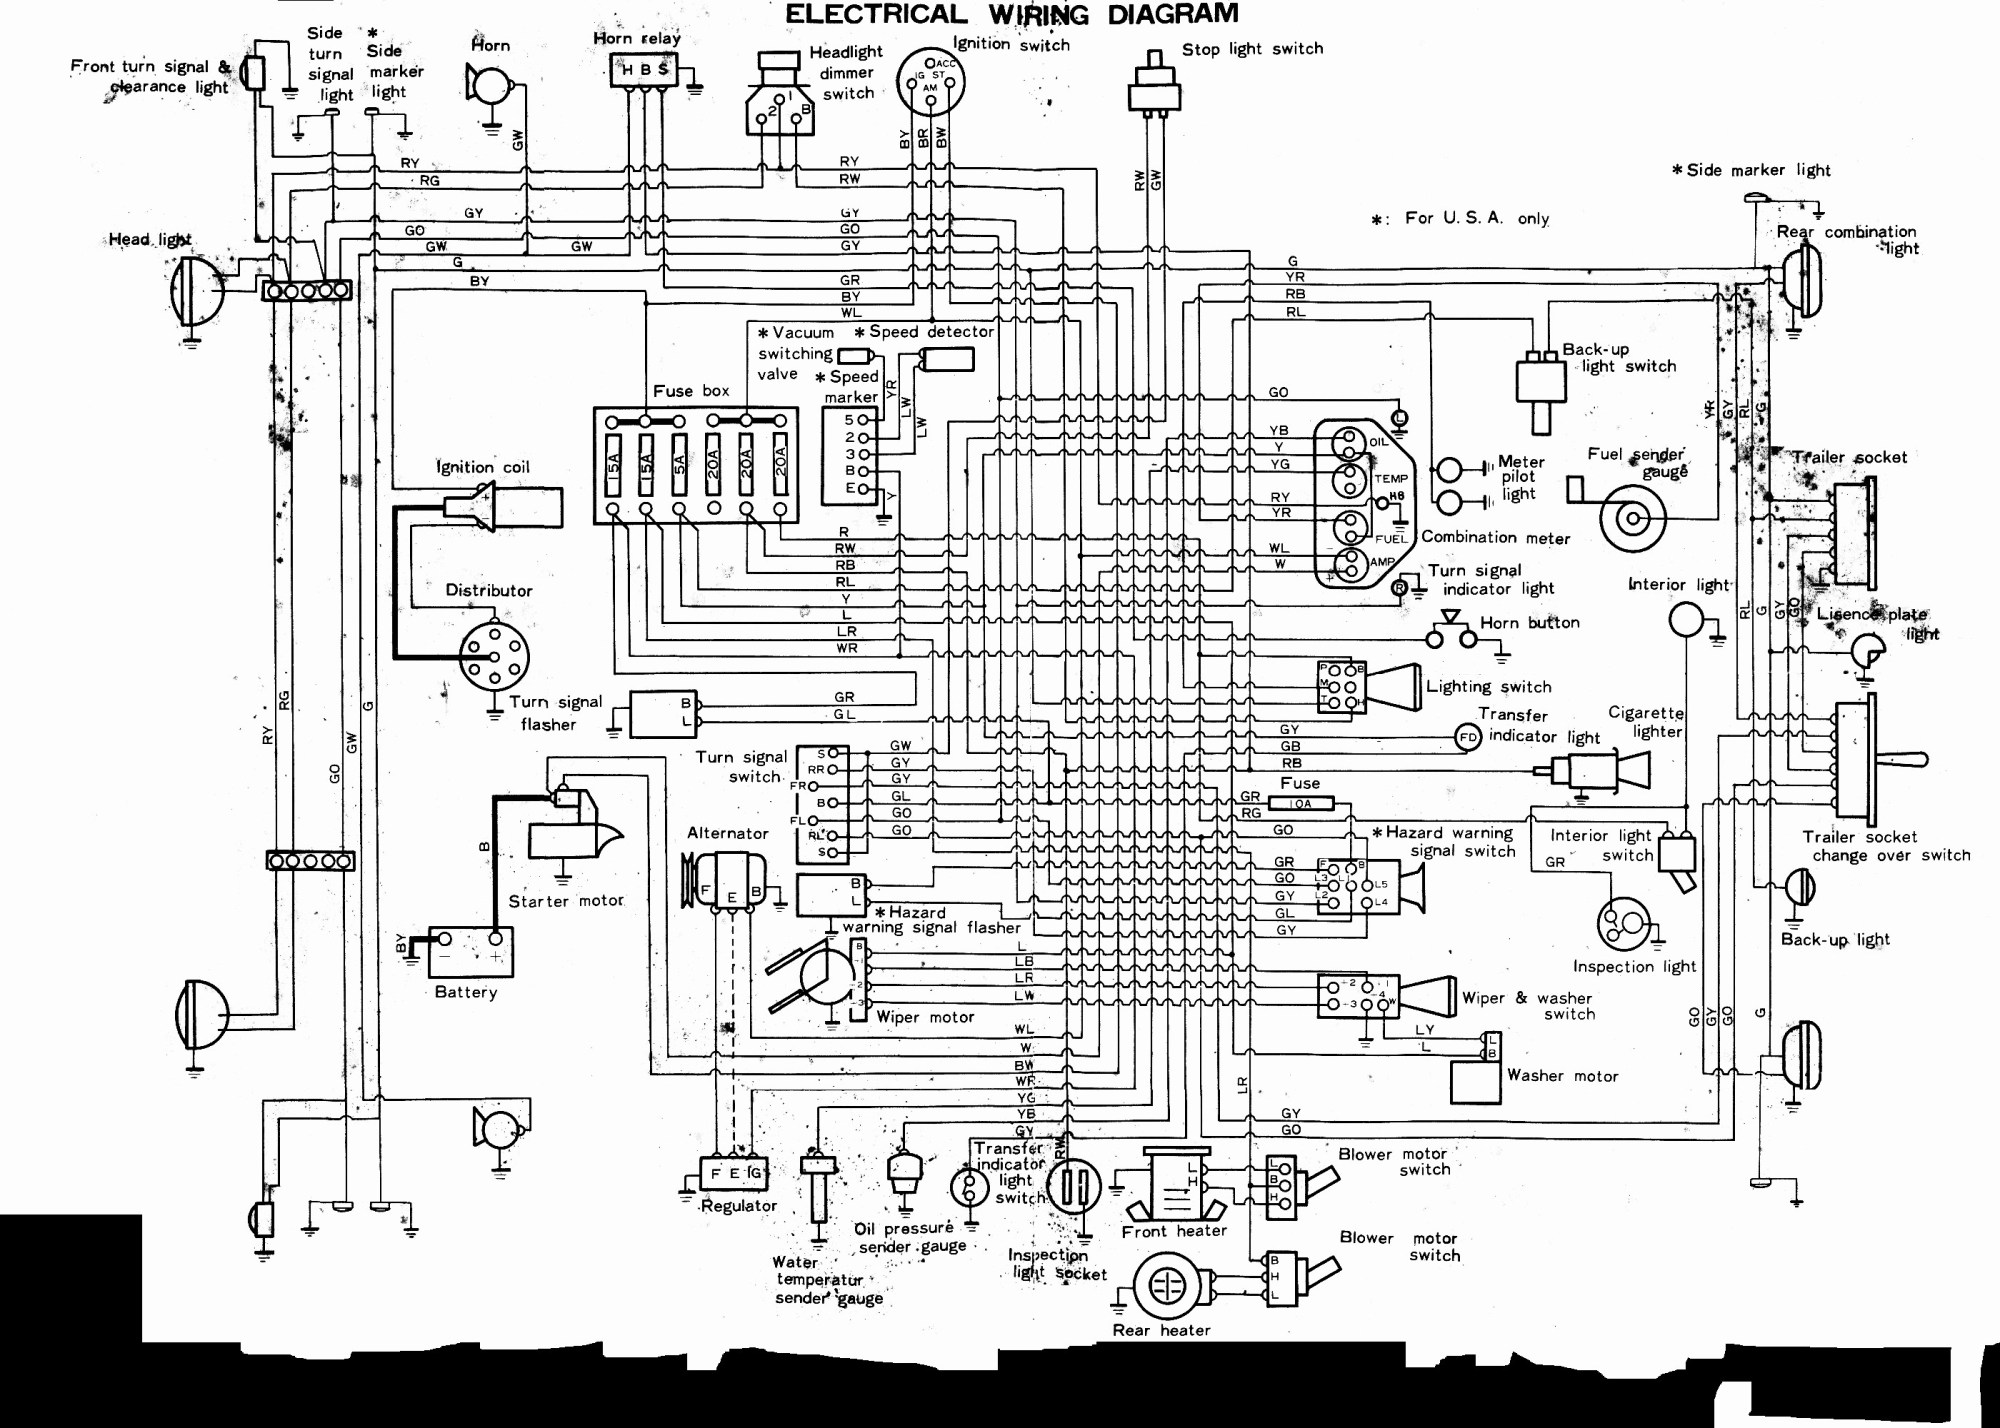 hight resolution of 2003 chrysler sebring engine diagram 96 chrysler sebring wiring diagram 96 free engine image for user